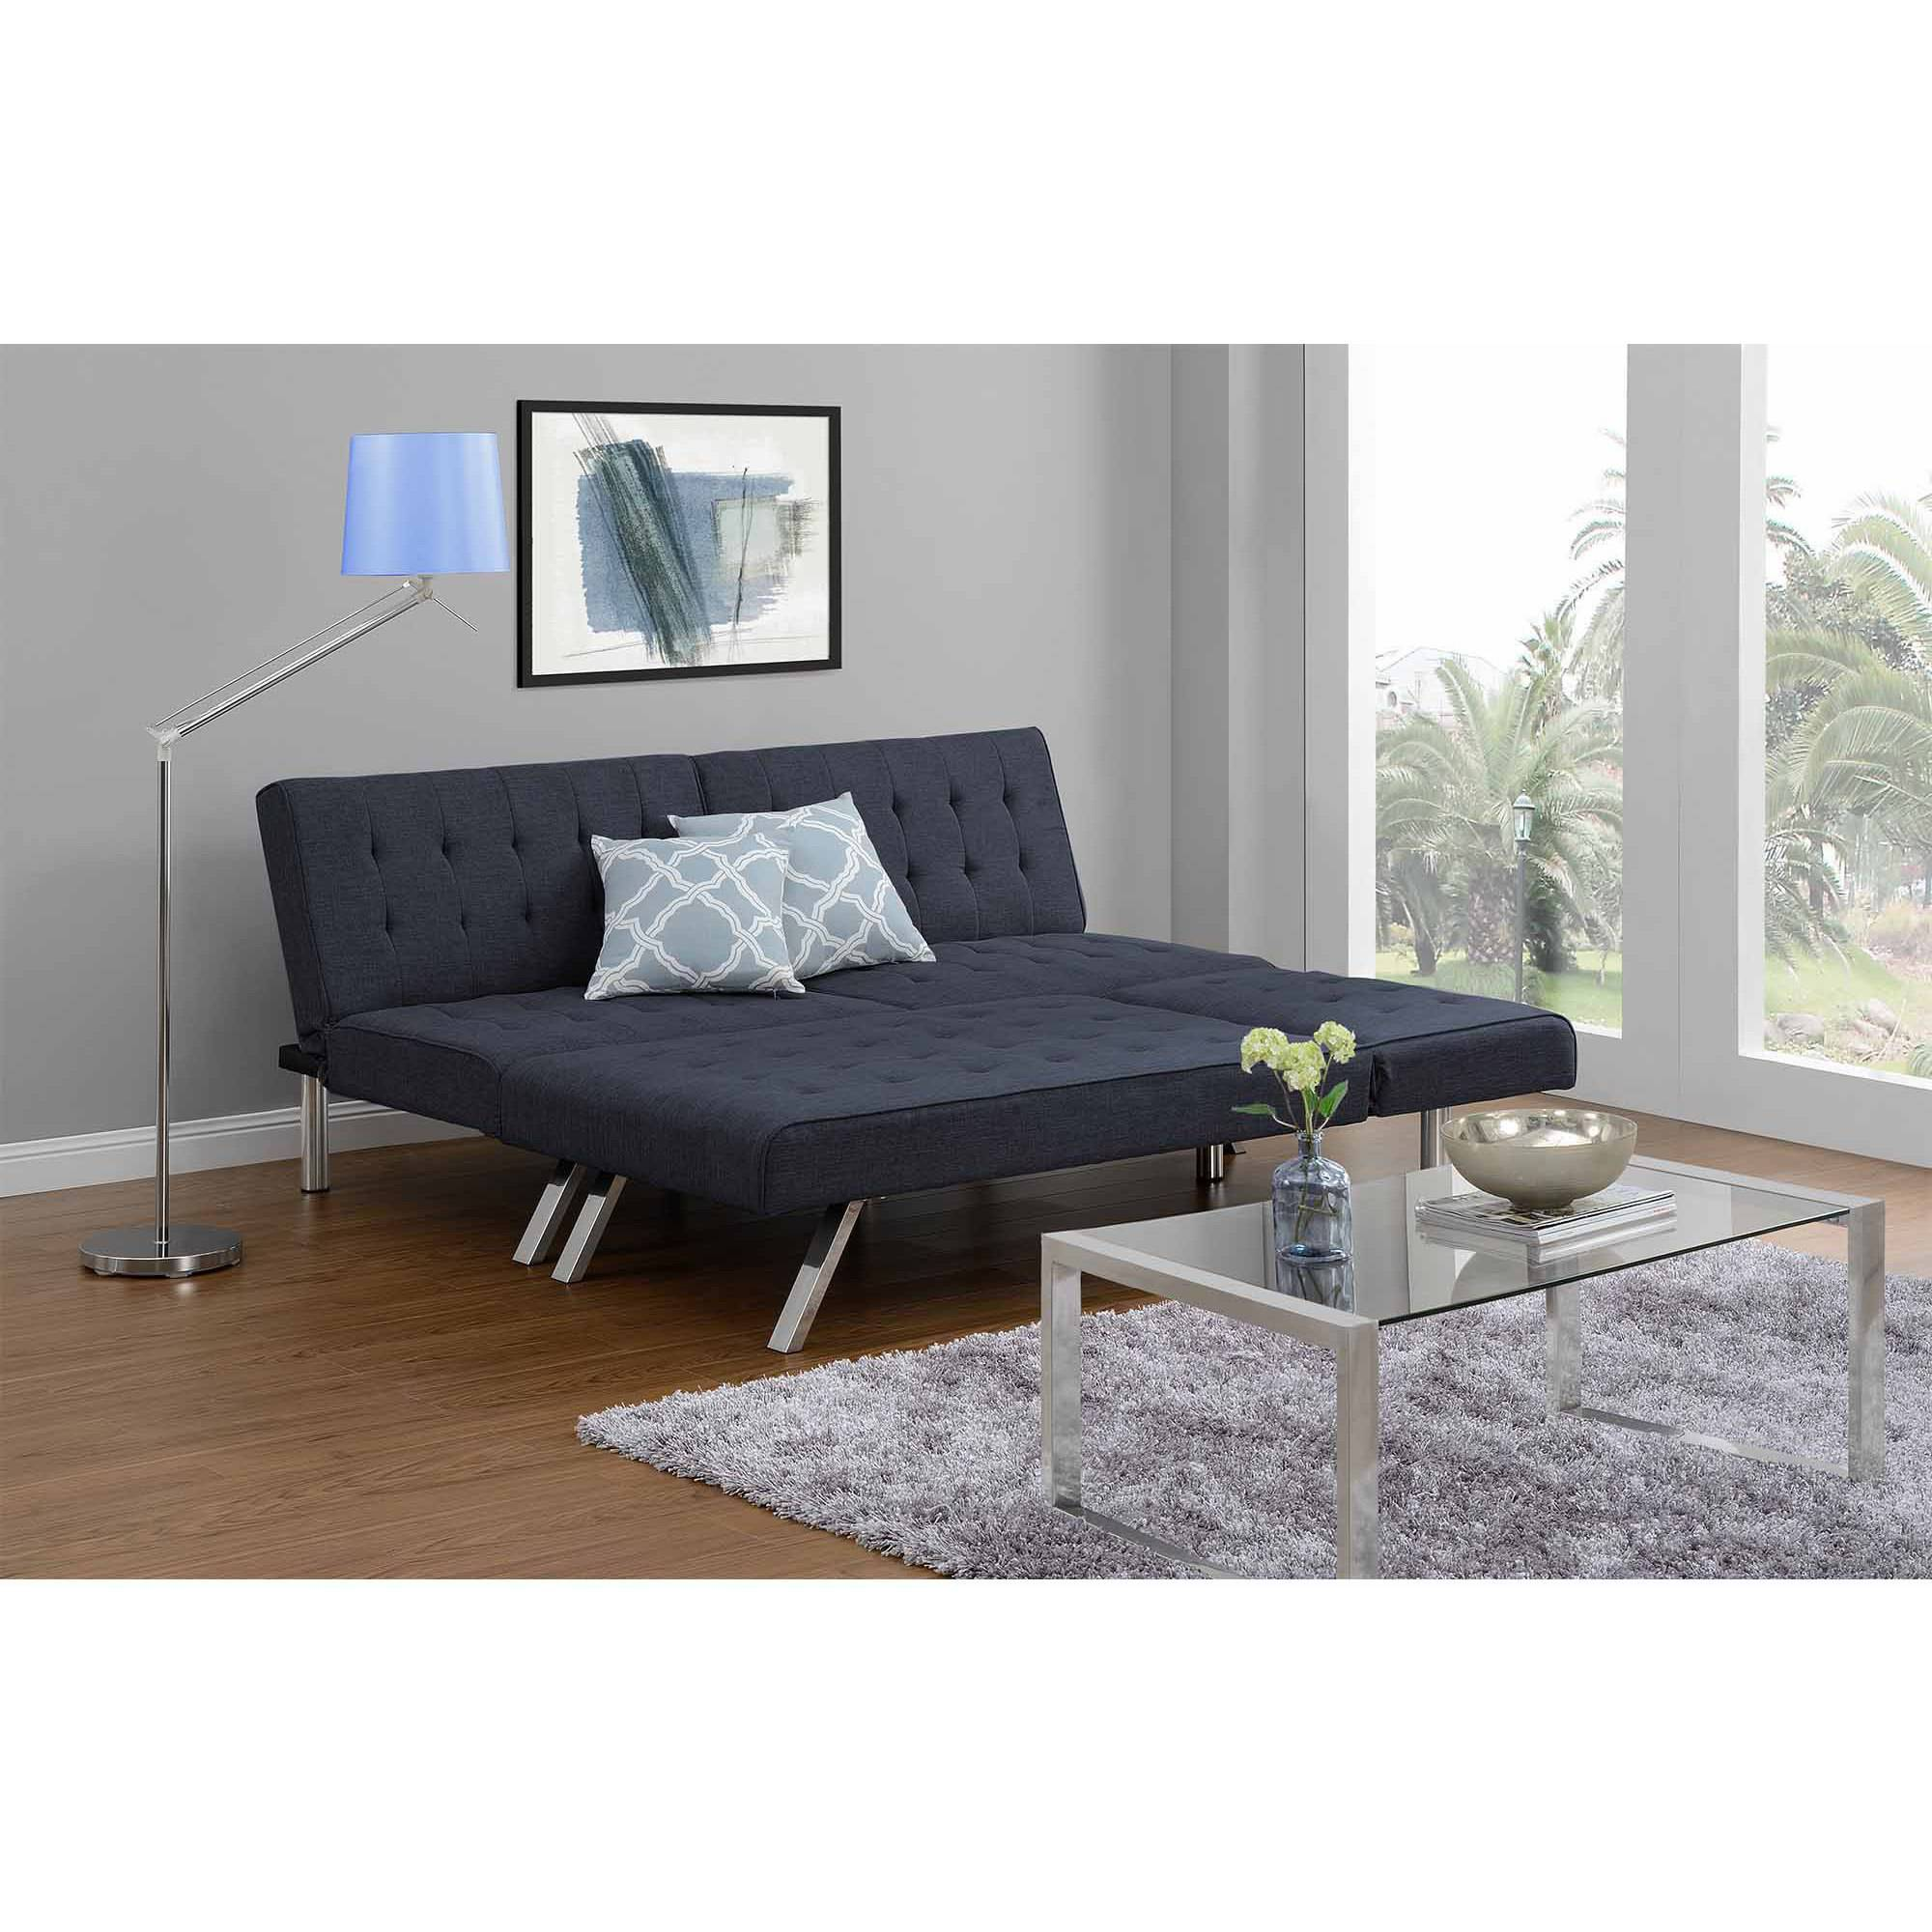 emily convertible futon multiple colors